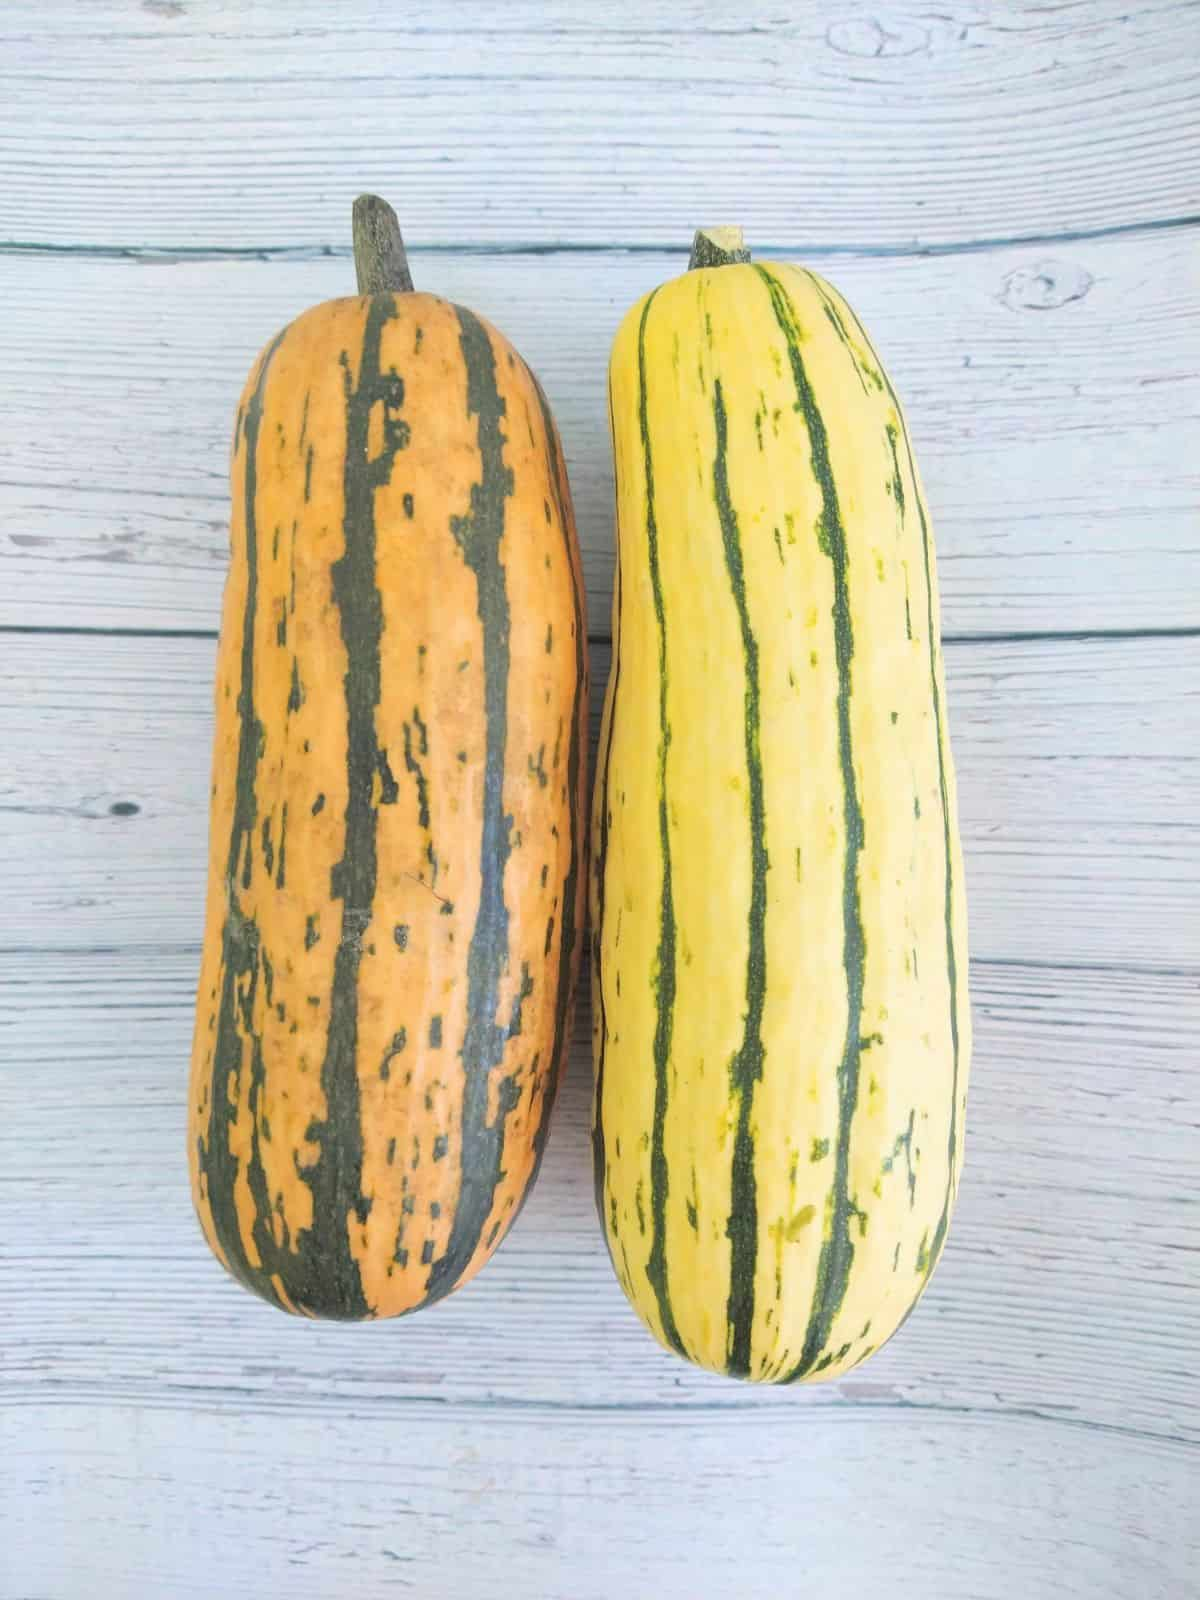 A Honey Boat Delicata Squash next to a traditional yellow Delicata squash on a white wooden background.